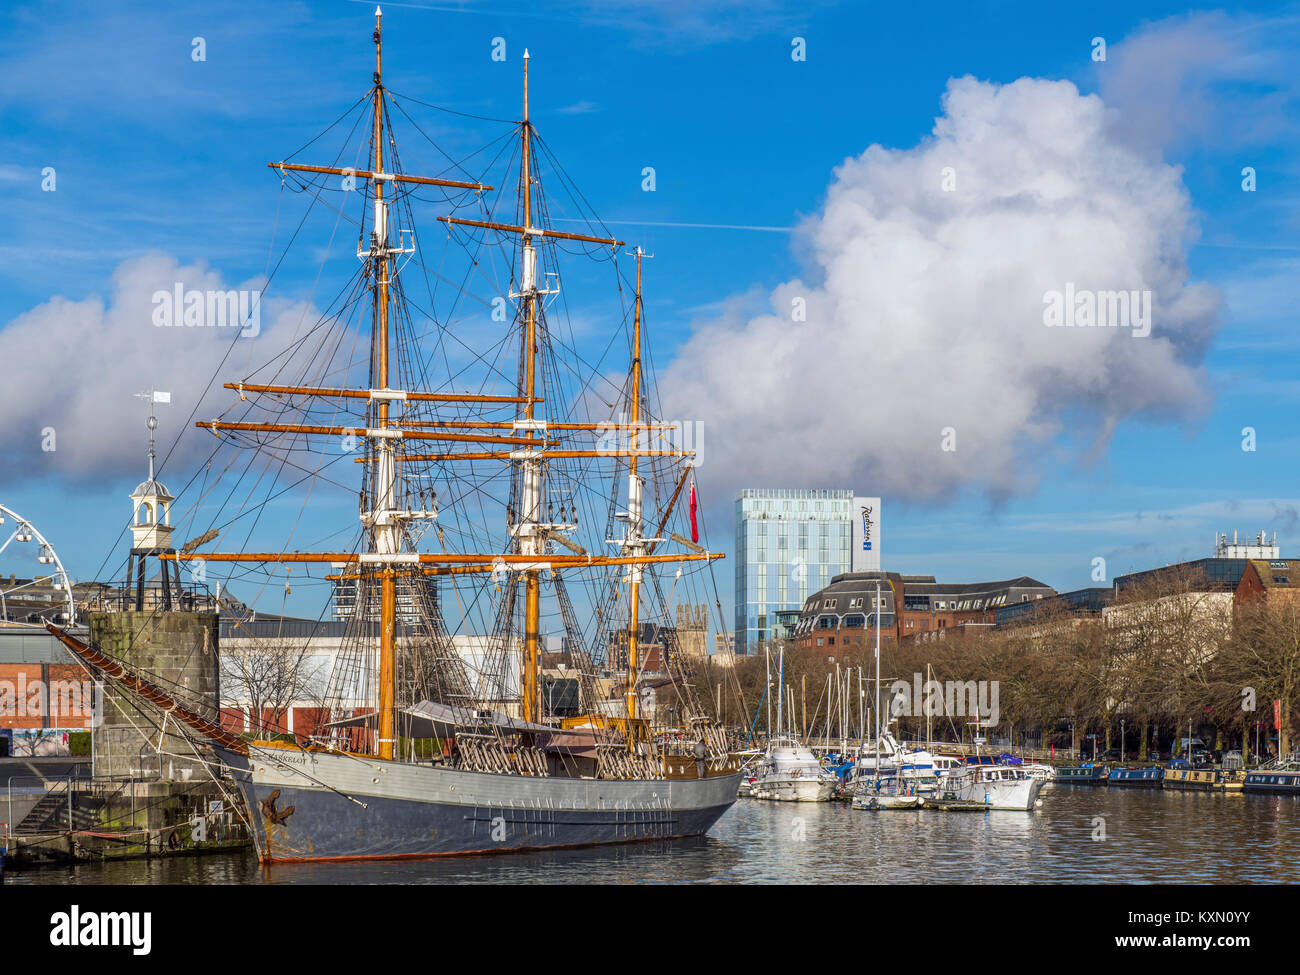 The Three Masted Barque Kaskelot moored in Bristol Harbour Stock Photo